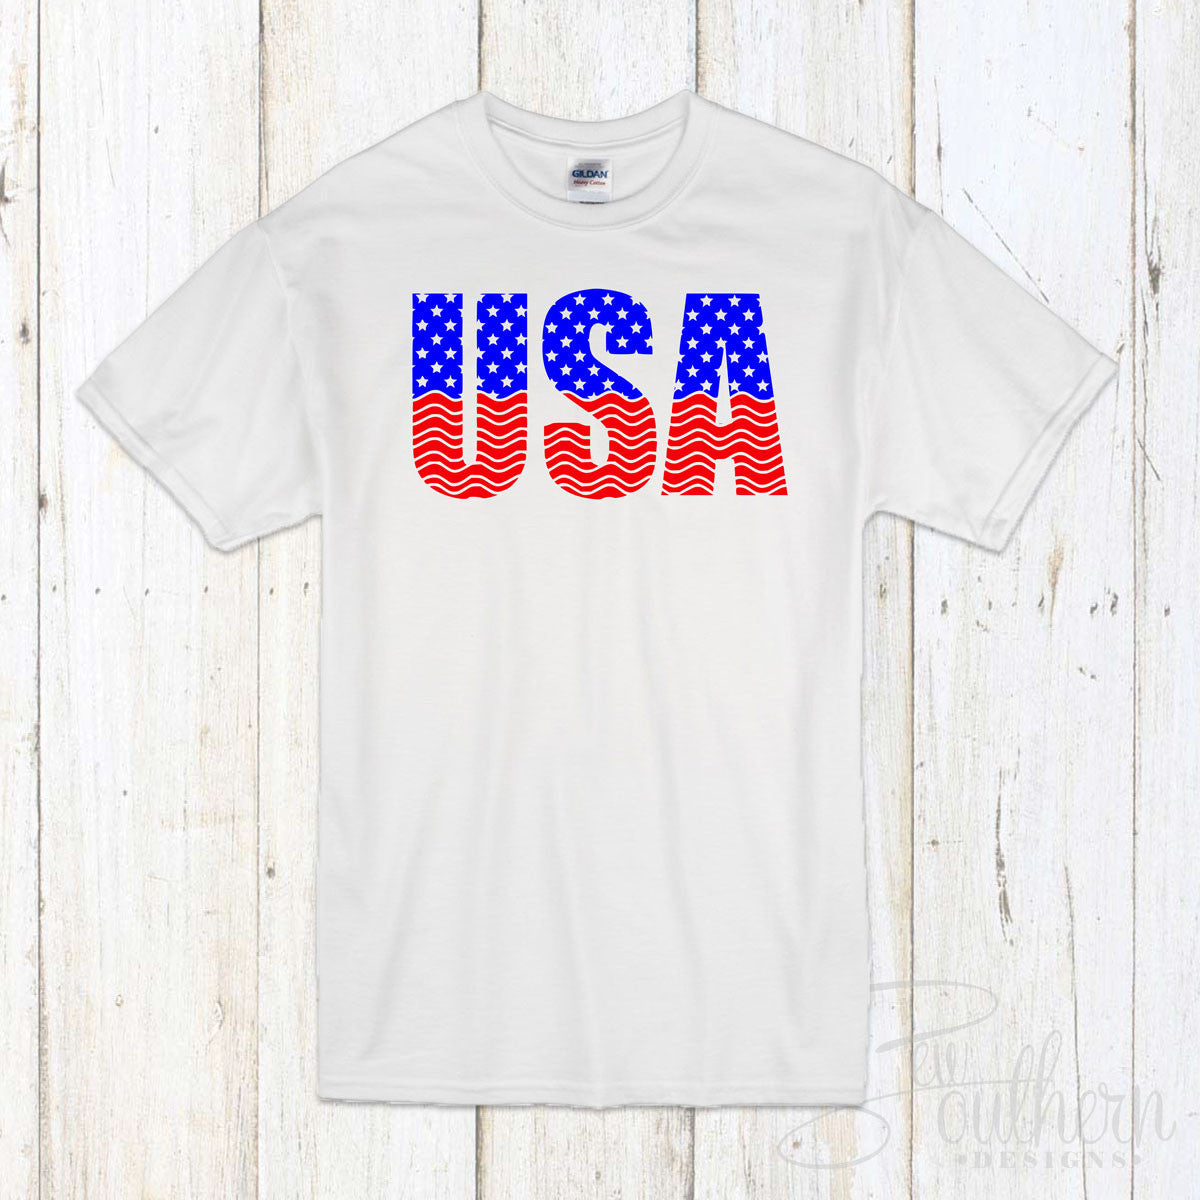 USA T-Shirt - White